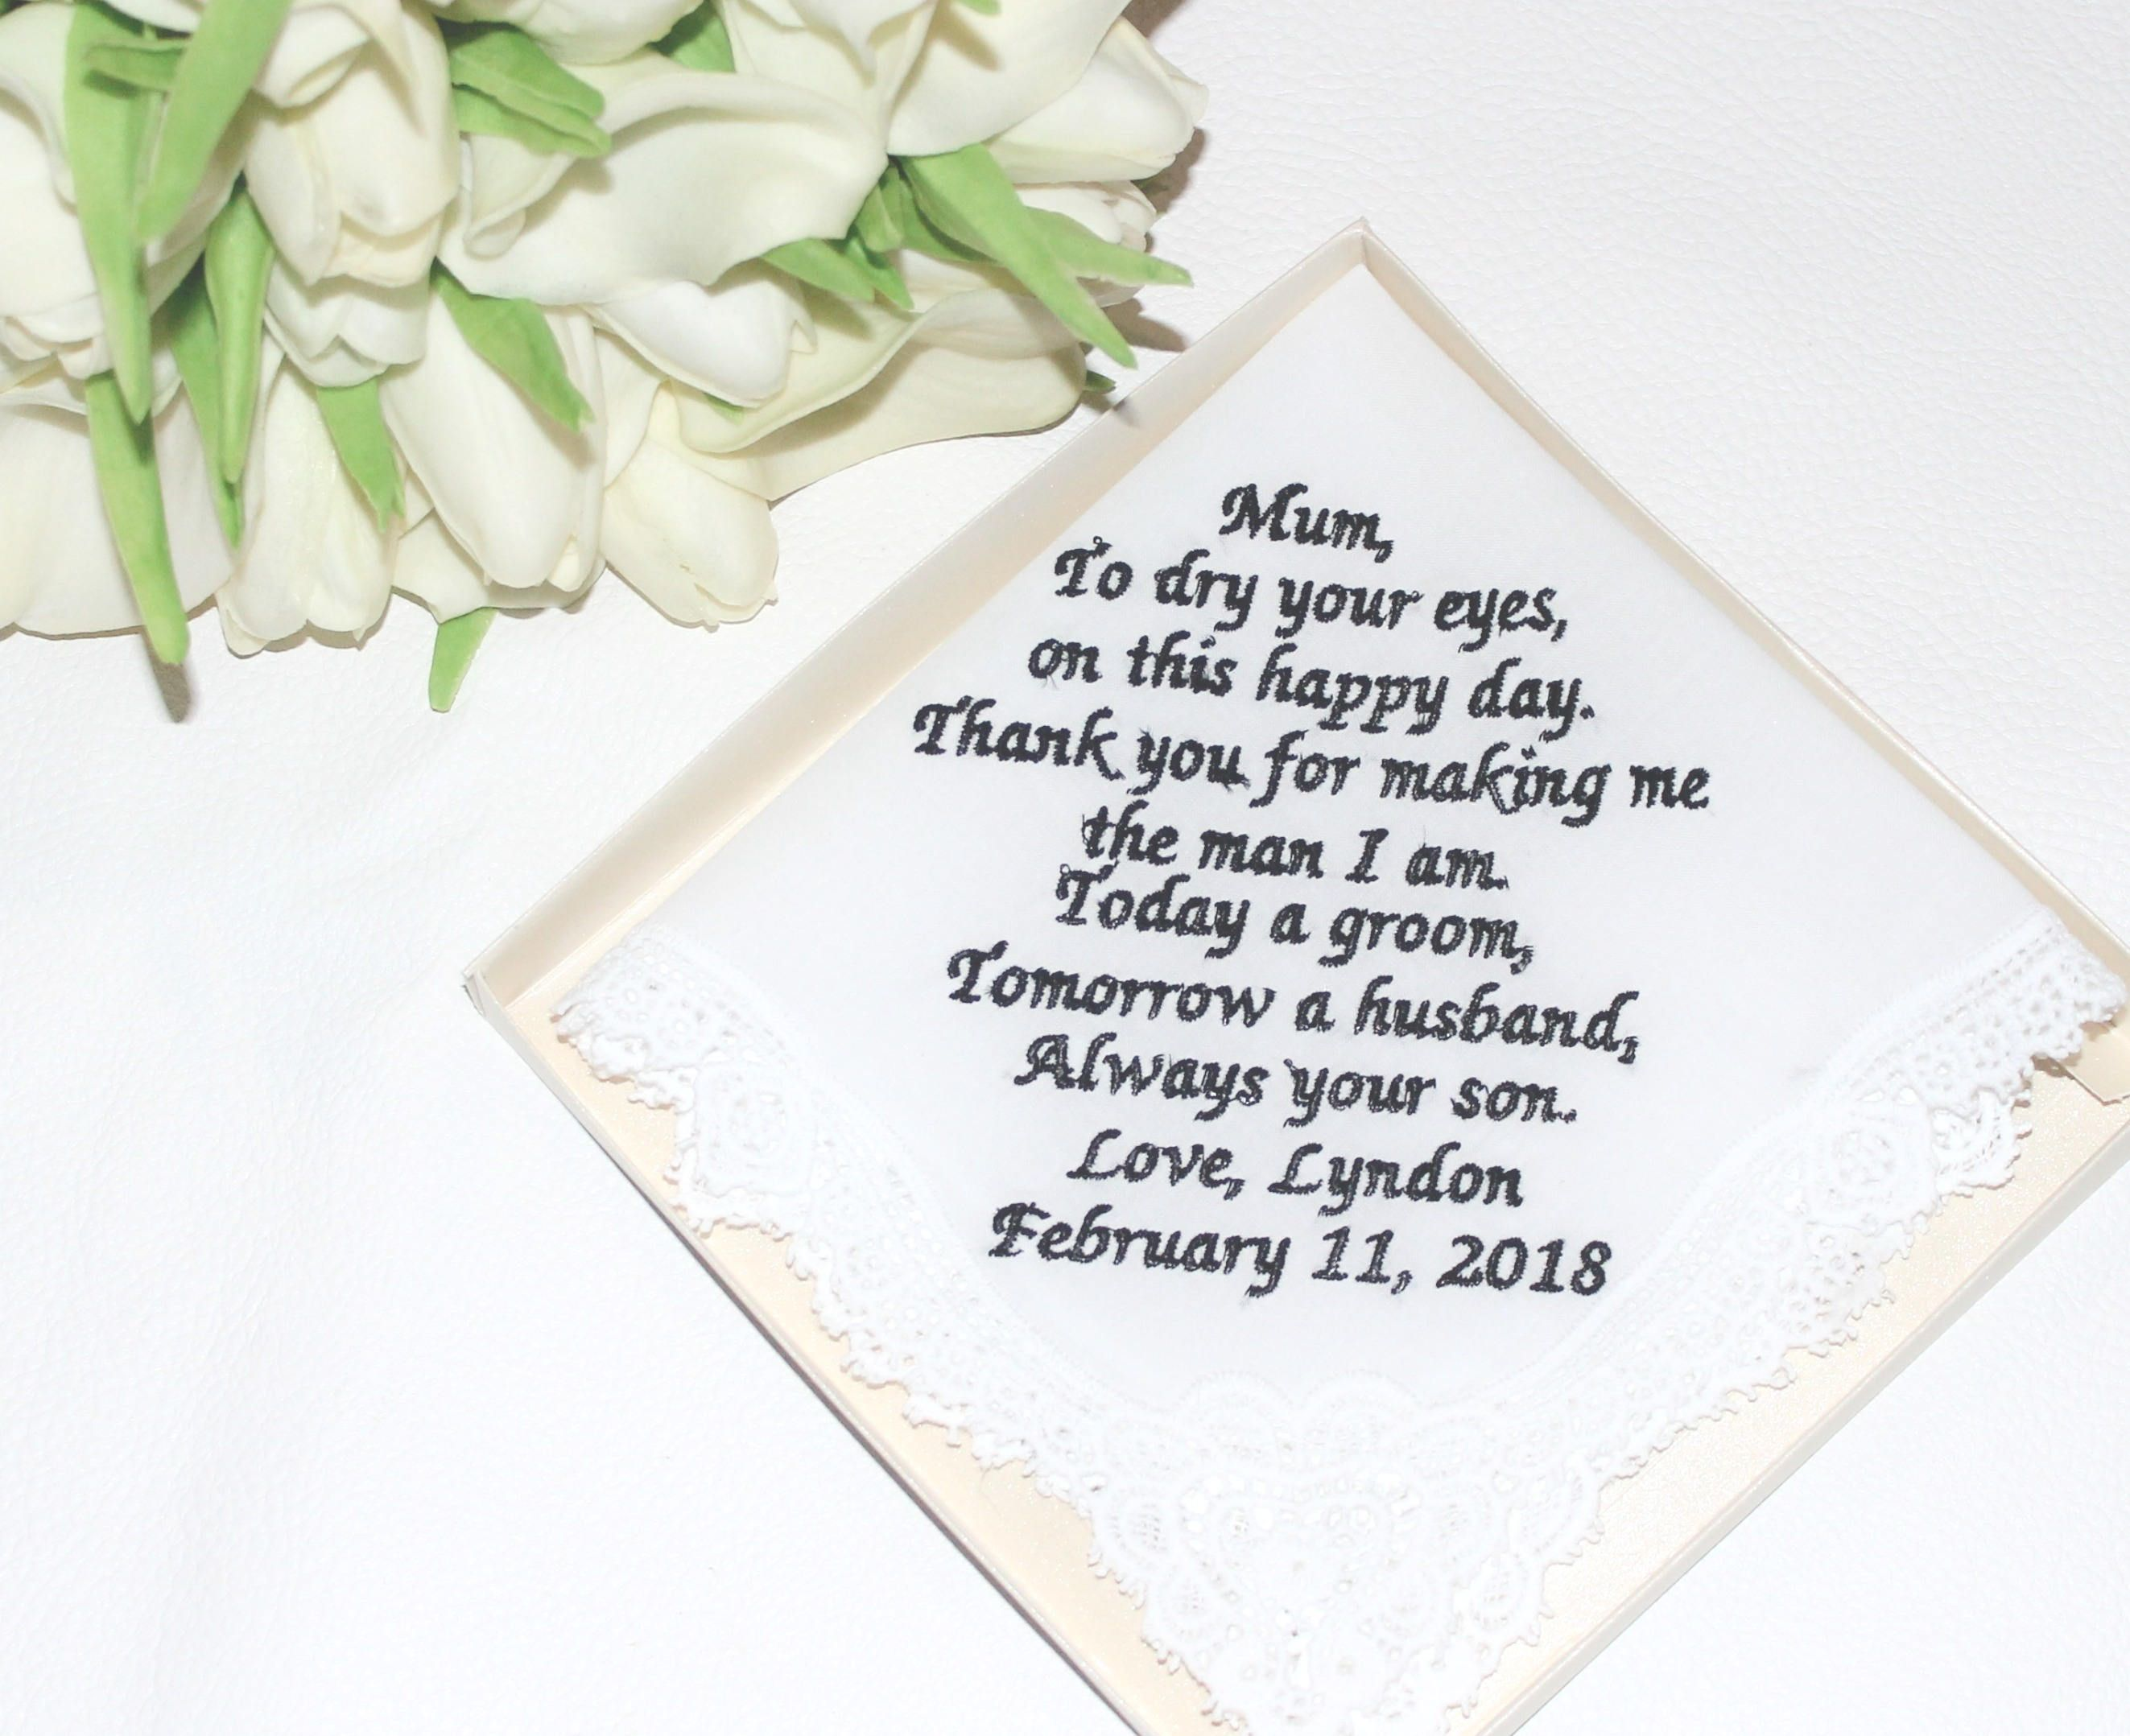 Embroidered Personalized Wedding Gift Groom To Mumgift For Aunt